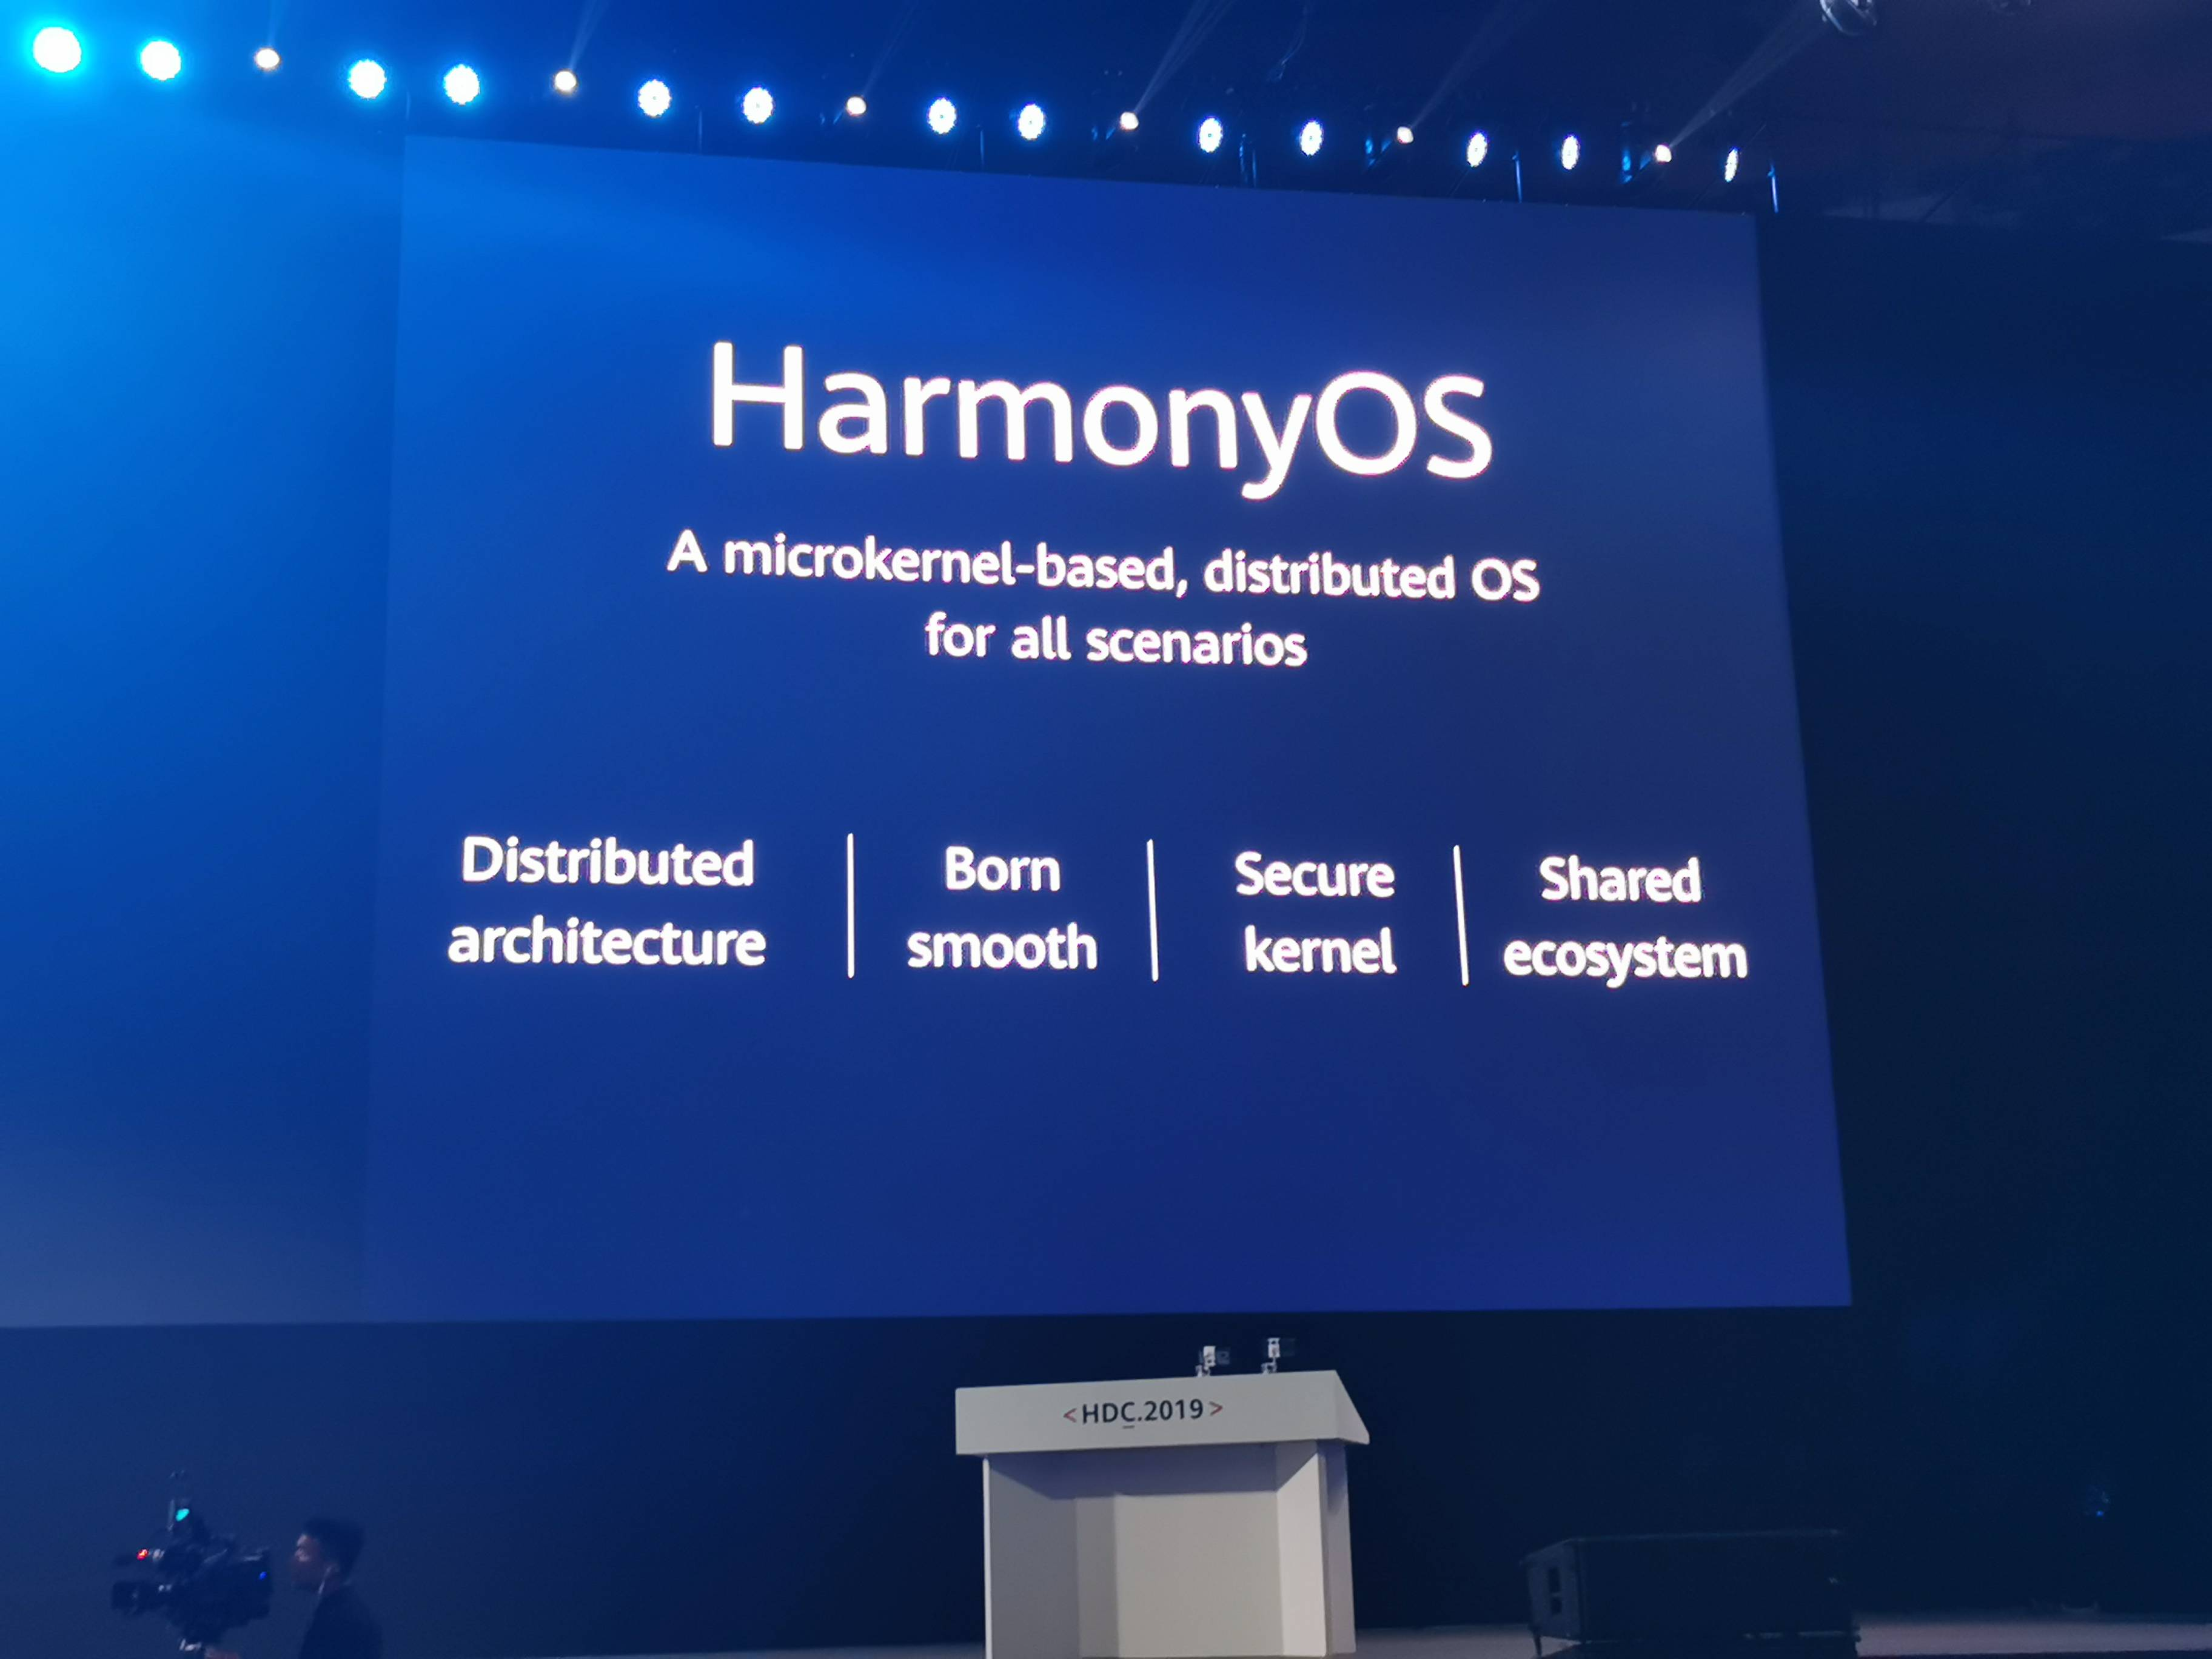 HarmonyOS is Huawei's new operating system ready to replace